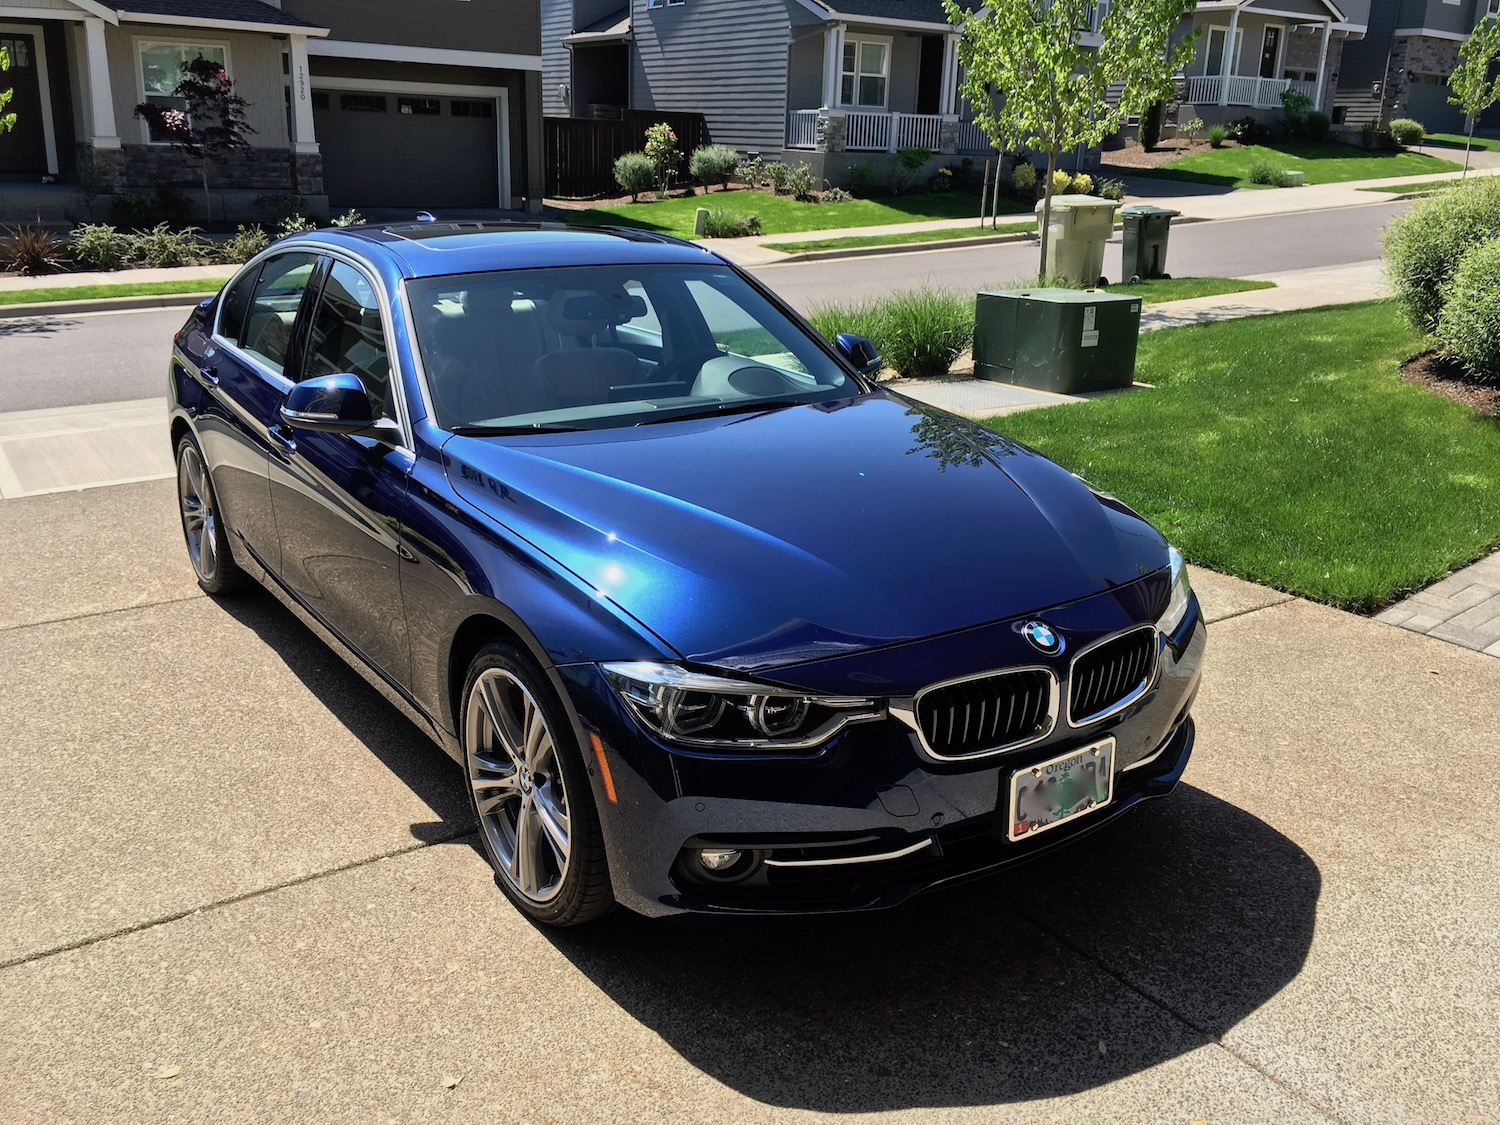 Bmw 320i Vs 328i >> Mediterranean Blue or Imperial Blue